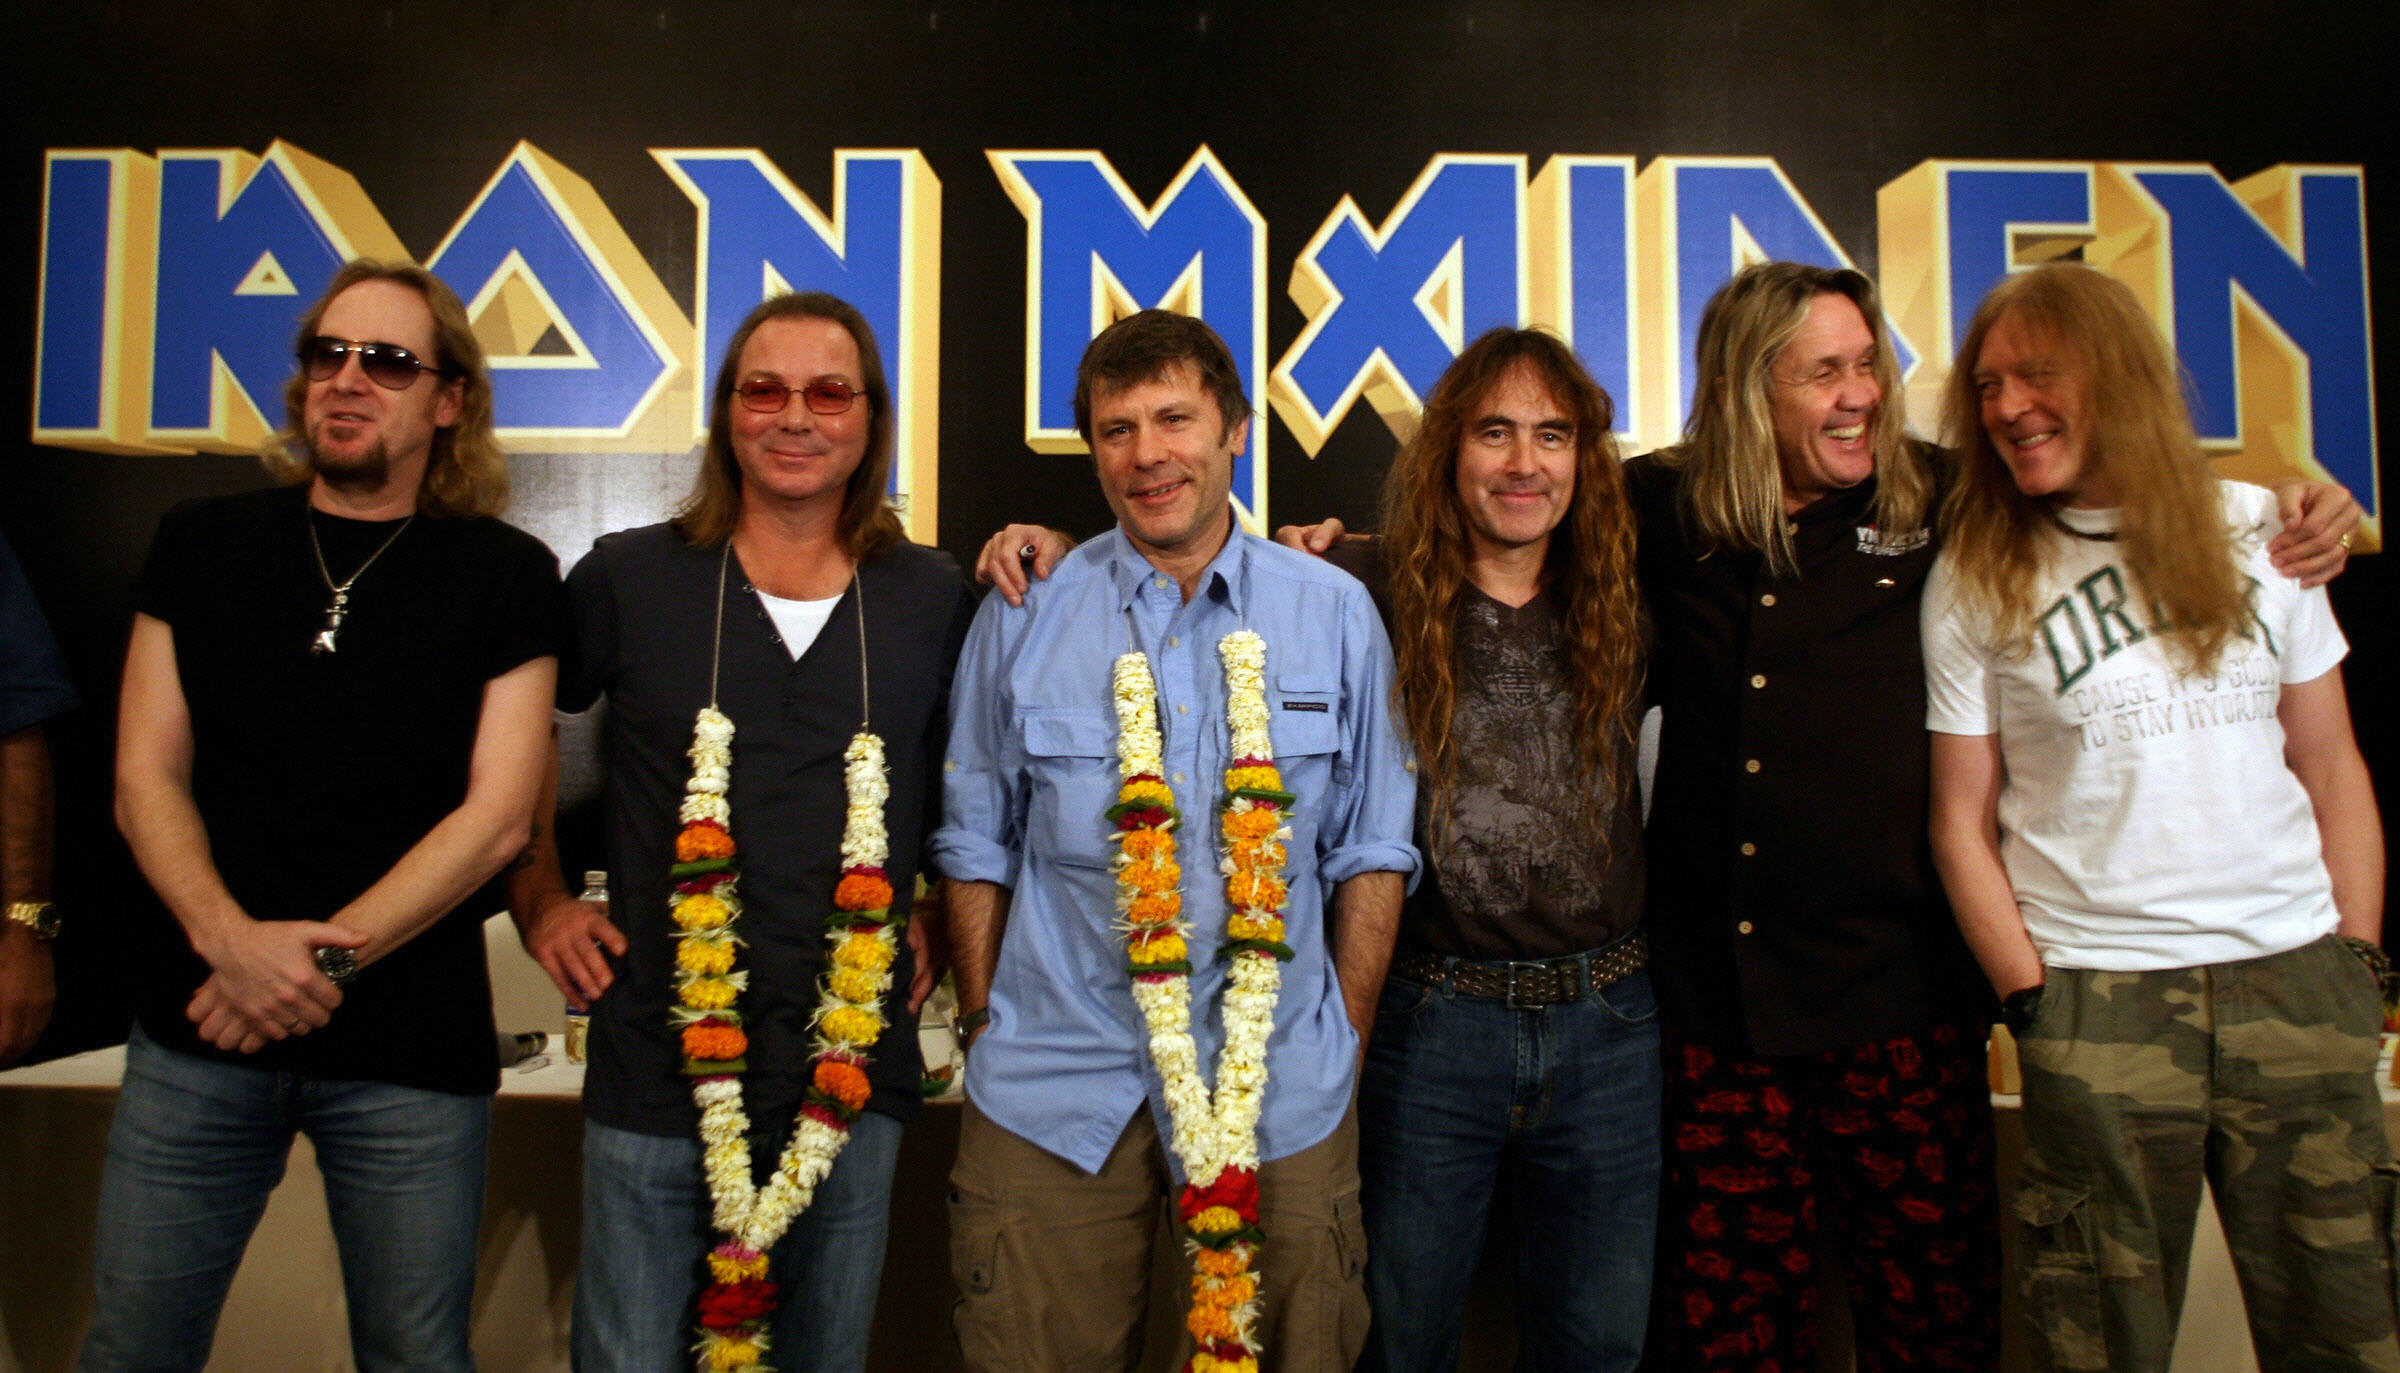 Iron Maiden's Net Worth: How Rich is the Iconic Metal Band?